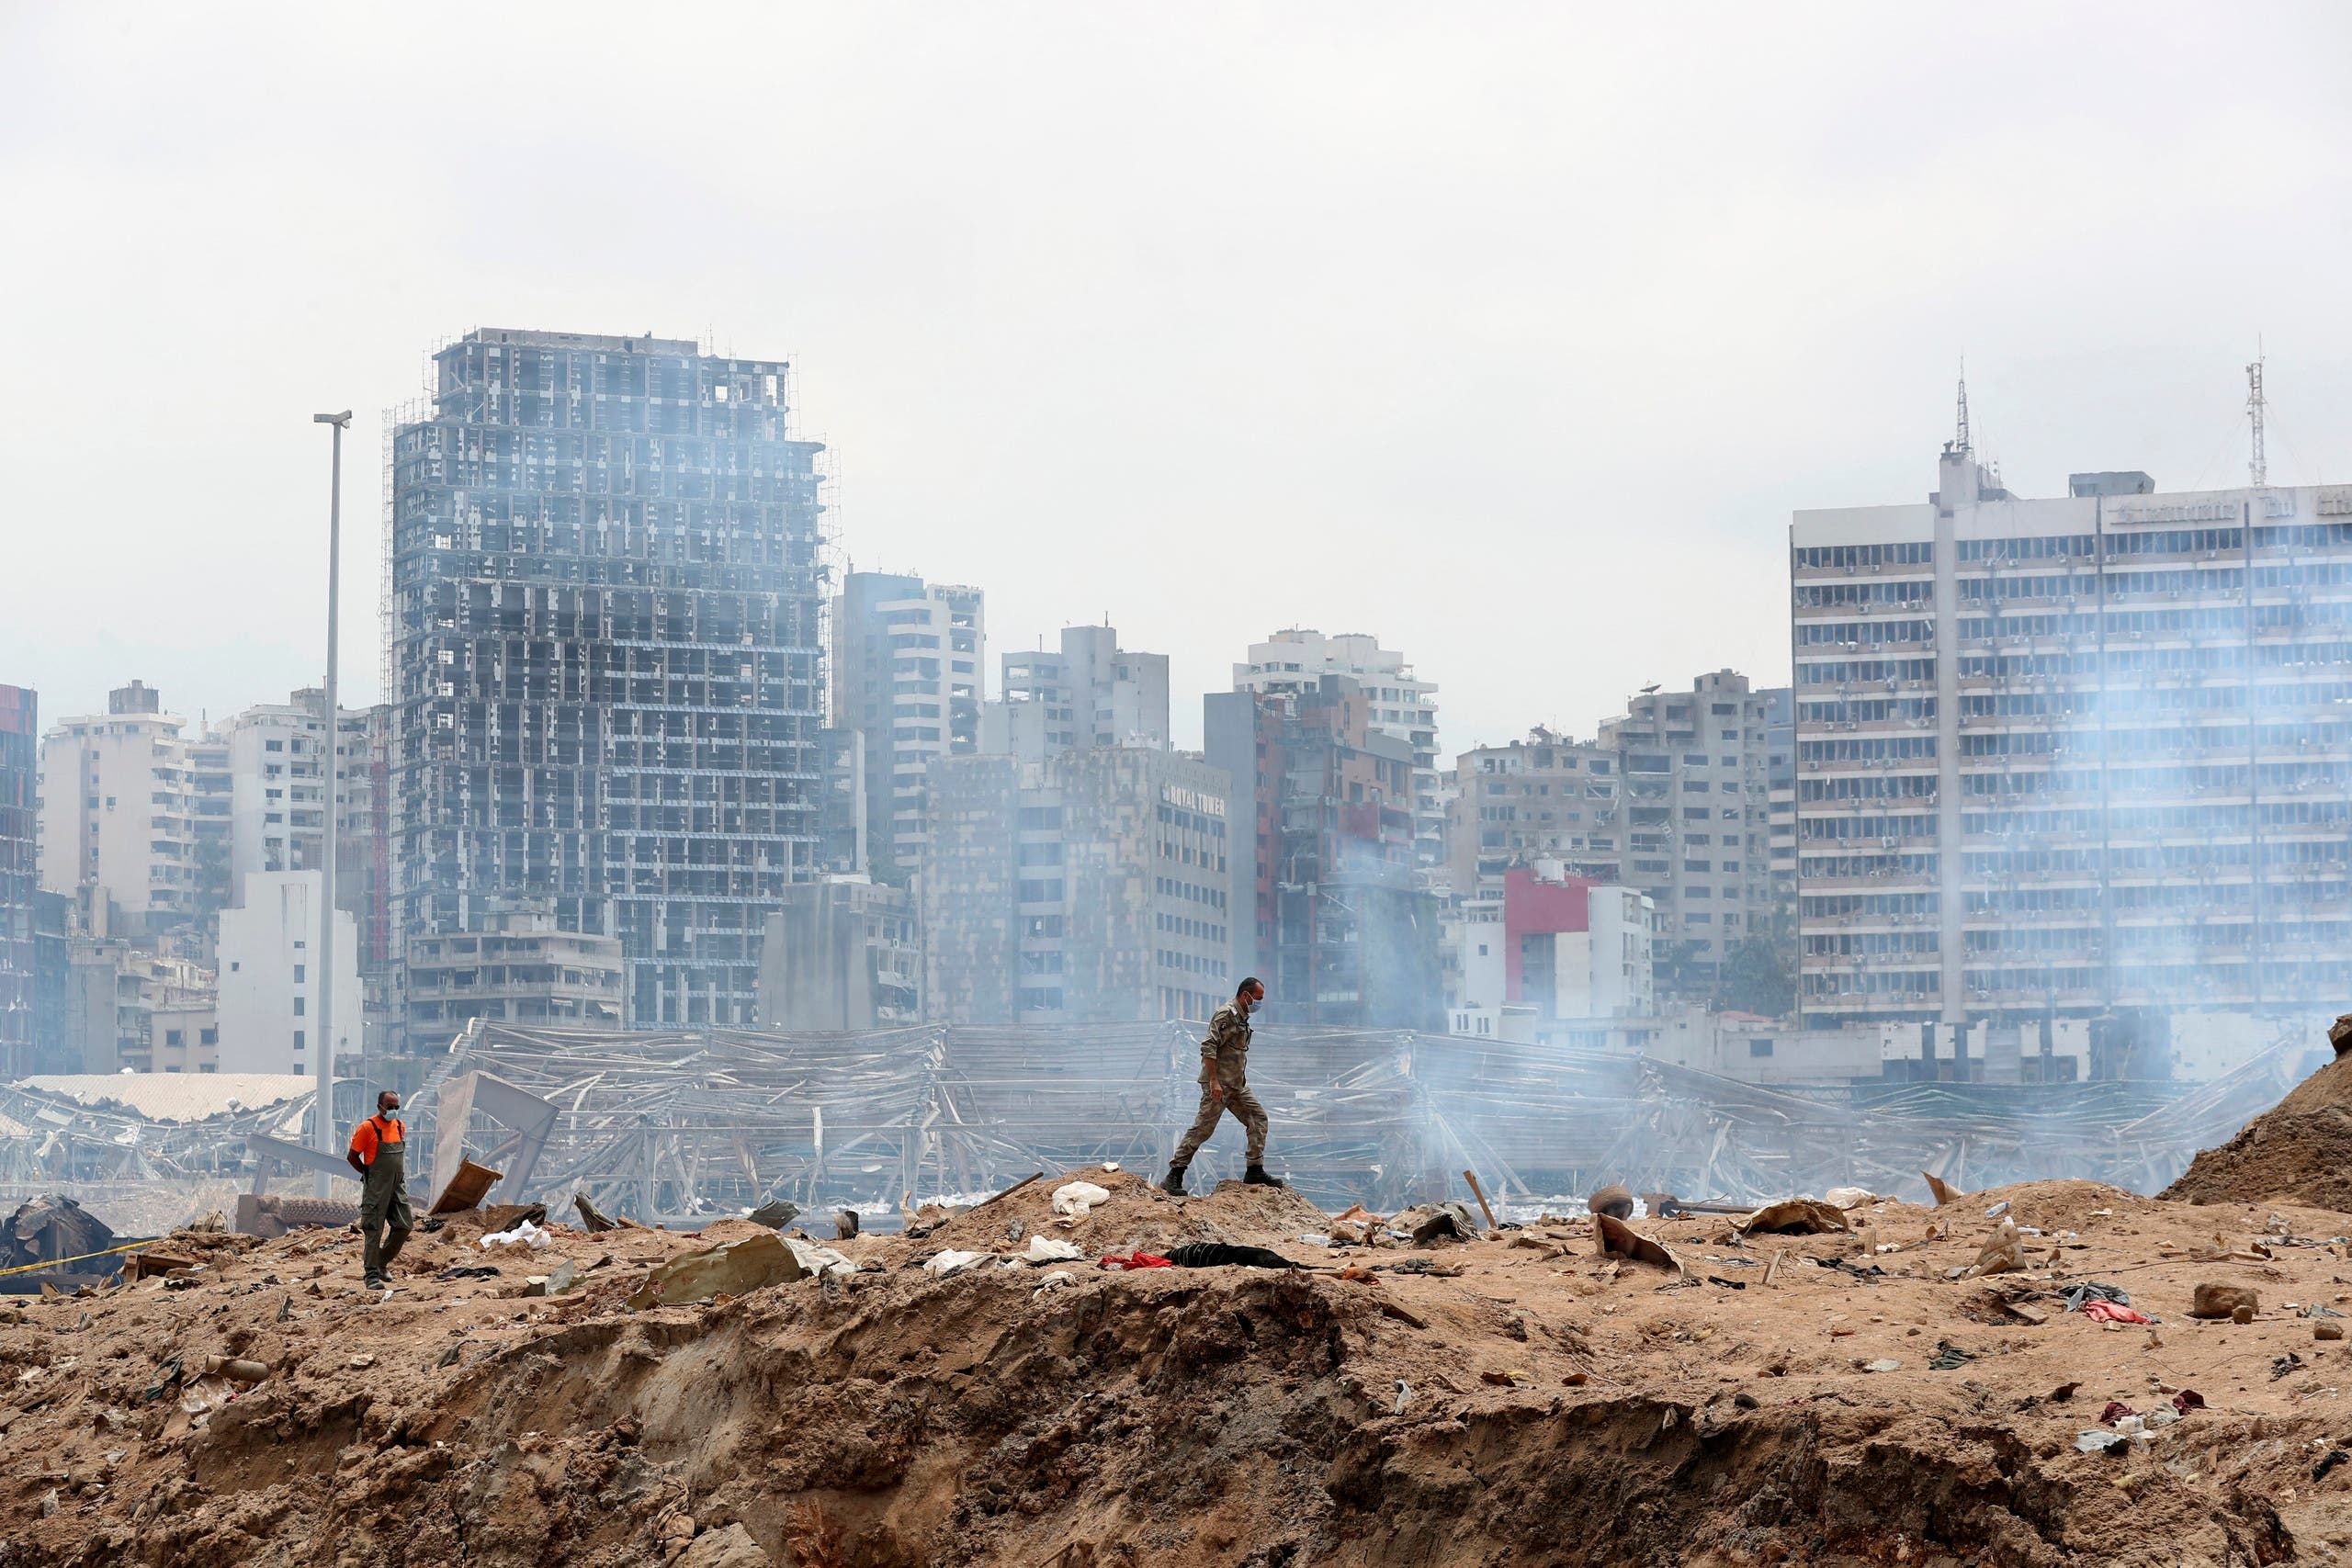 A soldier walks at the devastated site of the explosion in the port of Beirut on August 6, 2020 two days after a massive explosion devastated the Lebanese capital in a disaster that has sparked grief and fury. (File photo: AFP)